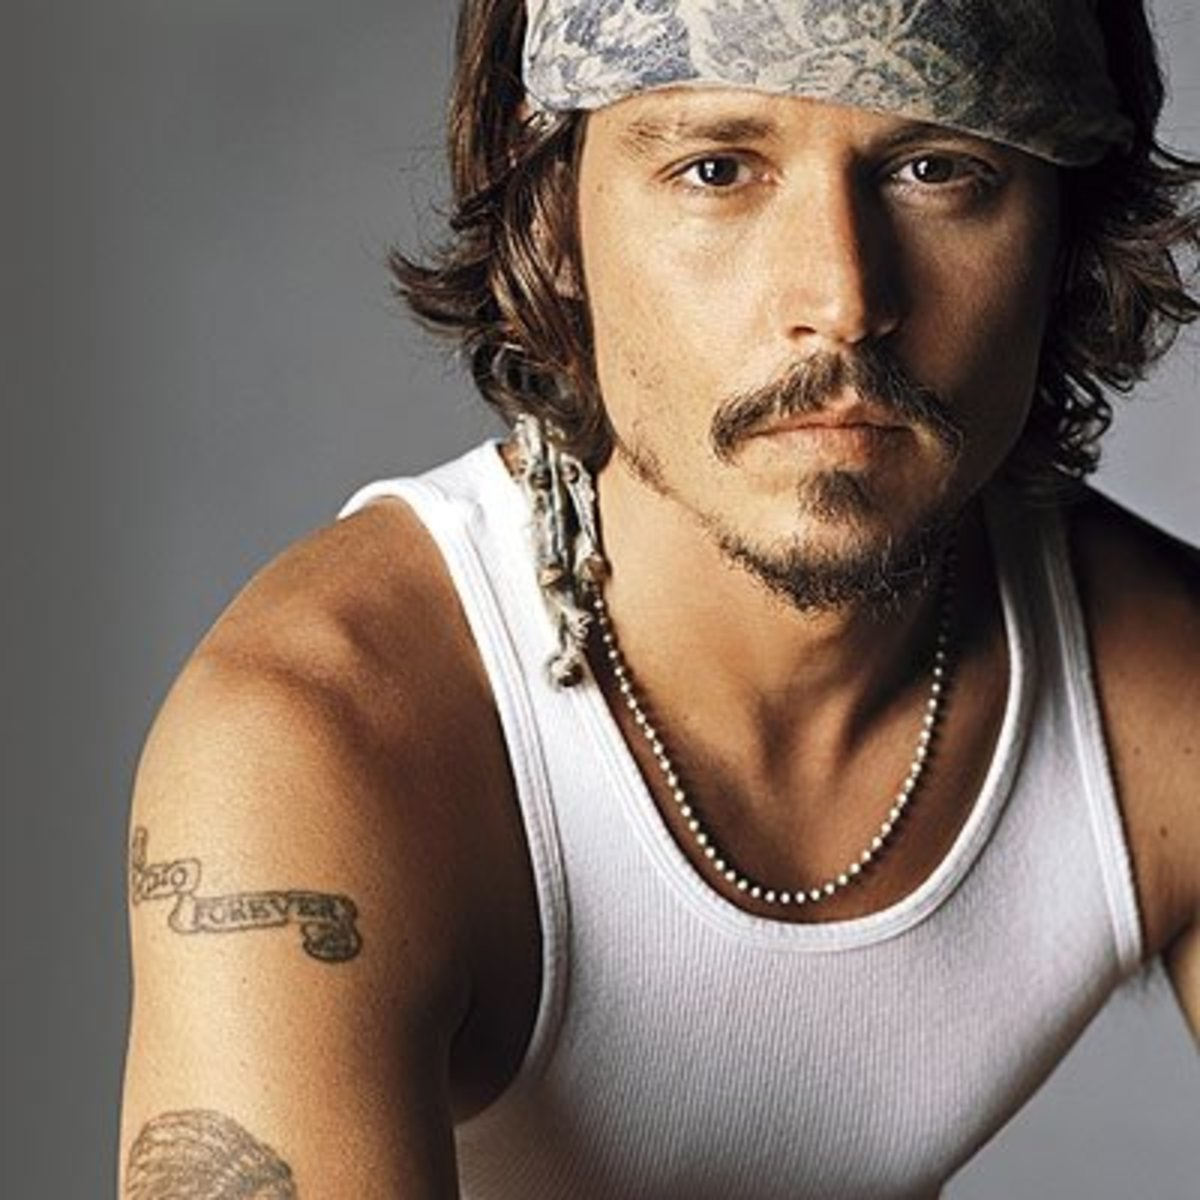 Johnny Depp was born in 1963